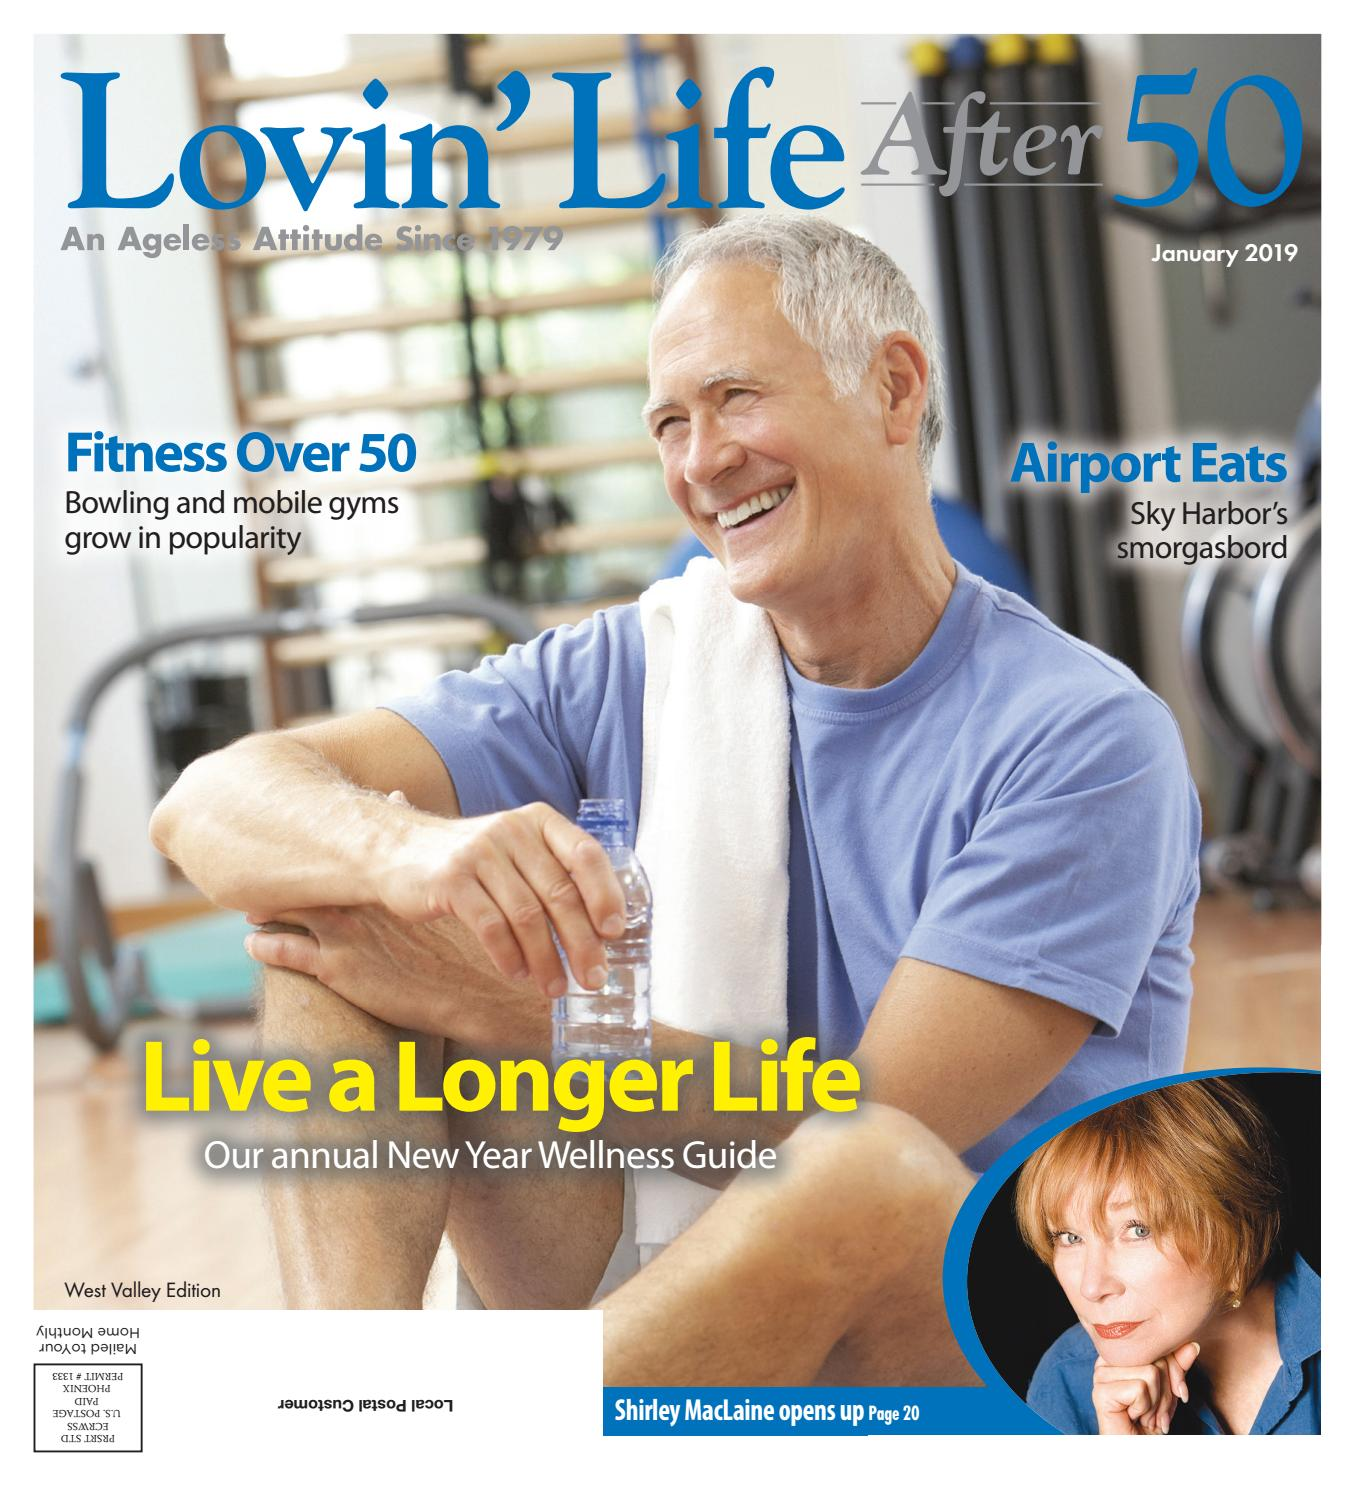 Lovin' Life After 50: West - January 2019 by Times Media